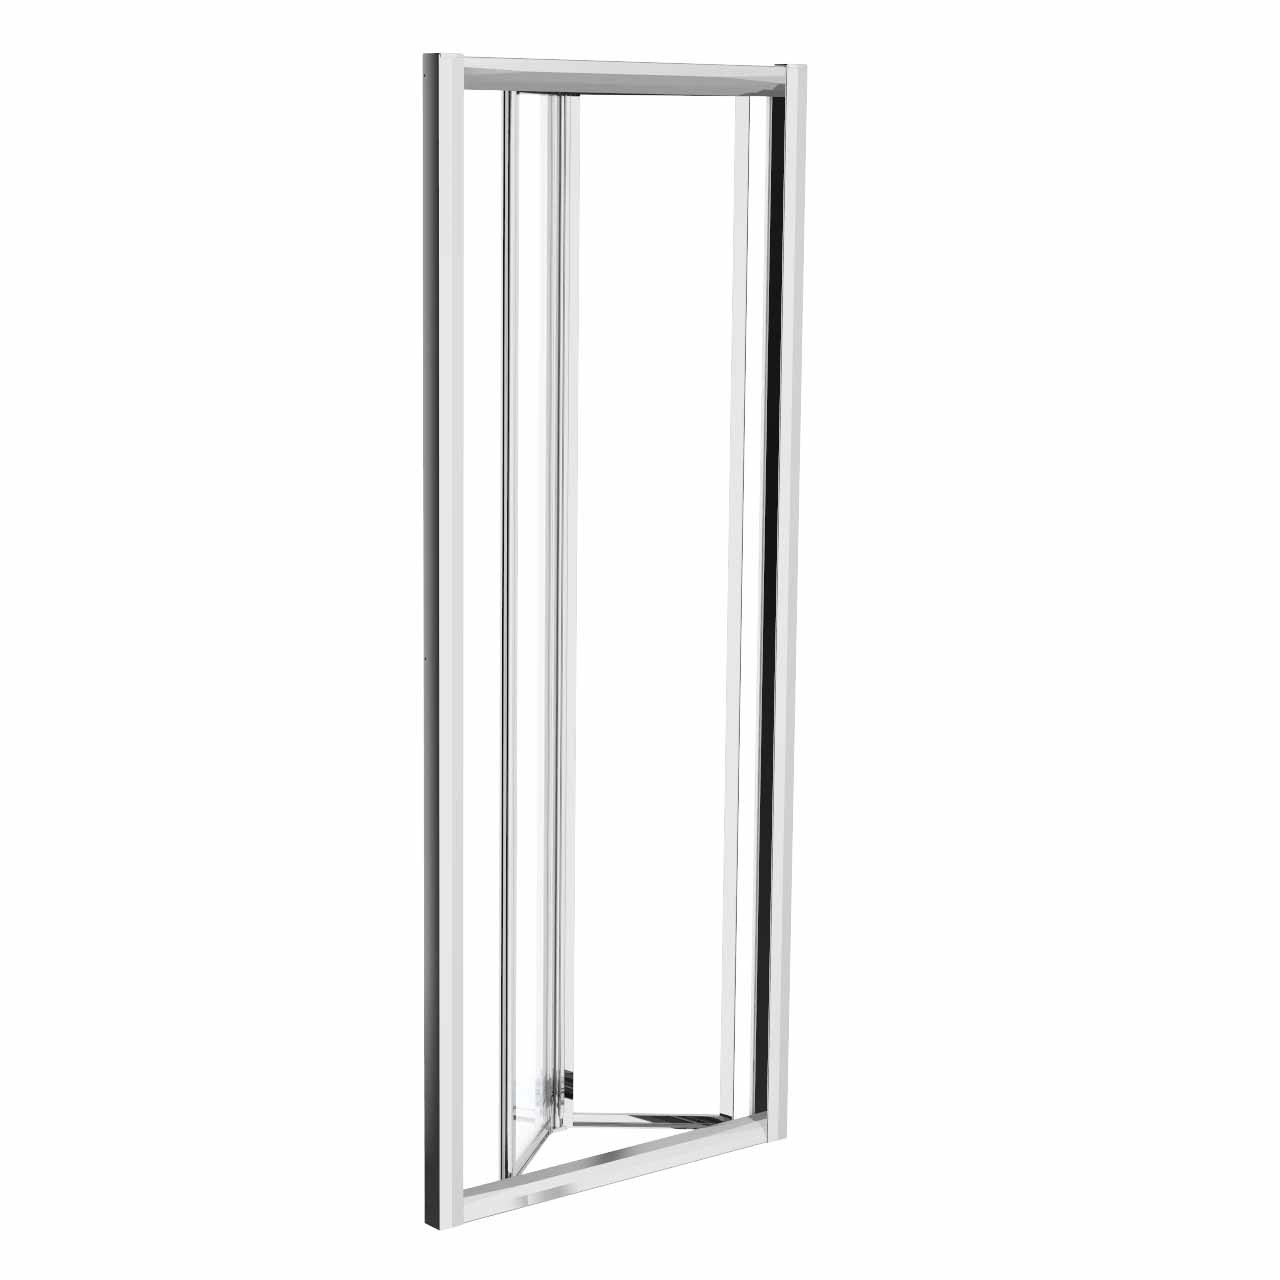 Series 6 760mm x 760mm Bi Fold Door Shower Enclosure